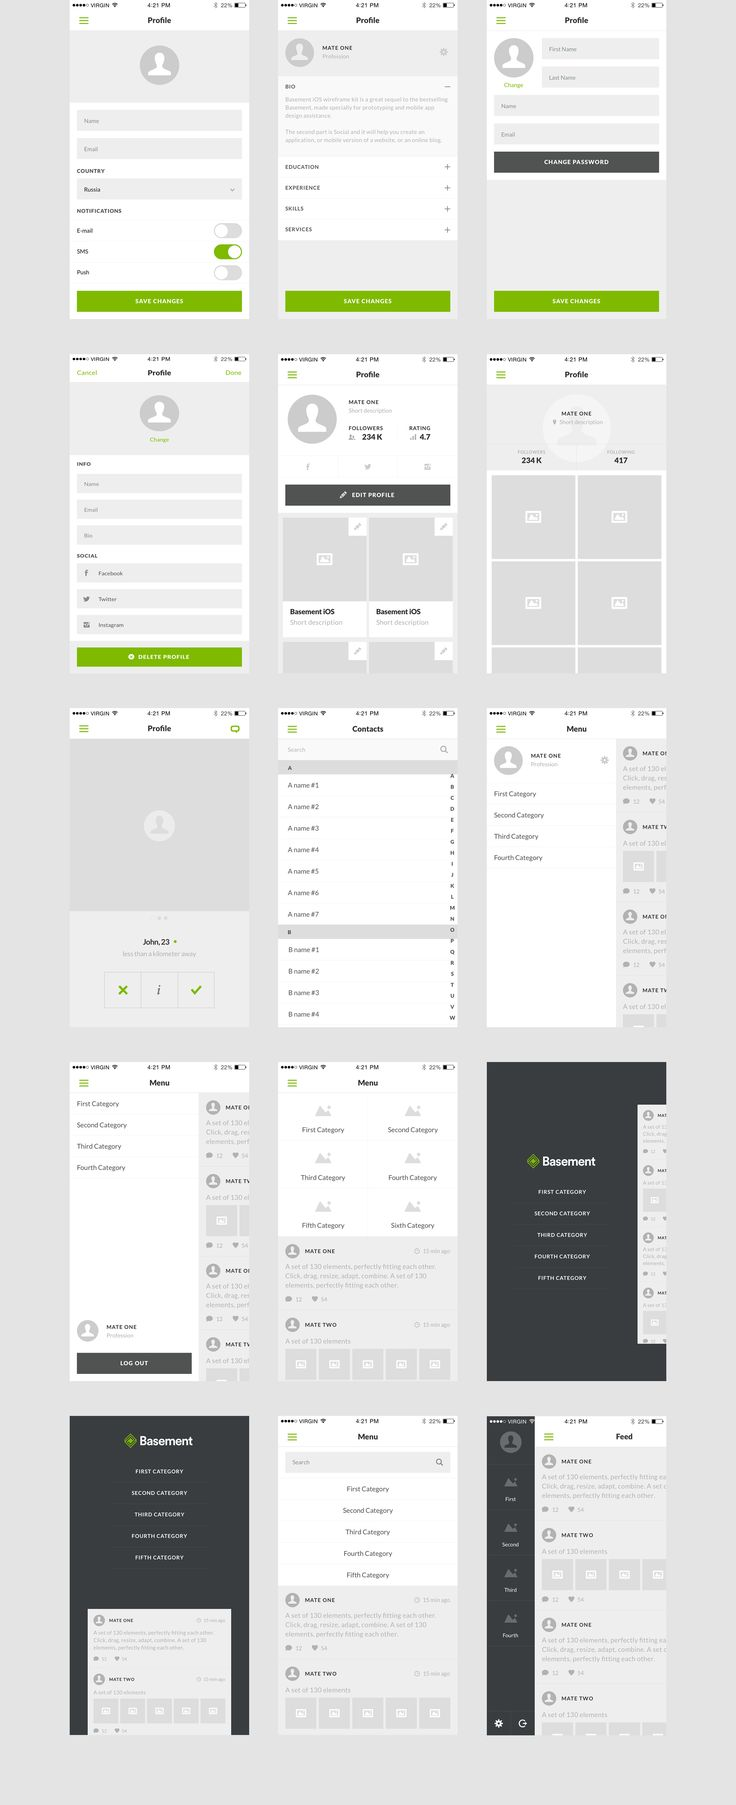 Social is the second part of Basement iOS. An expertly crafted Wireframe Kit for quick effortless prototyping, and mobile app design assistance. It includes 60 ready-to-use screens for iPhone 6 resolution, focused on social activity and multimedia interactions.